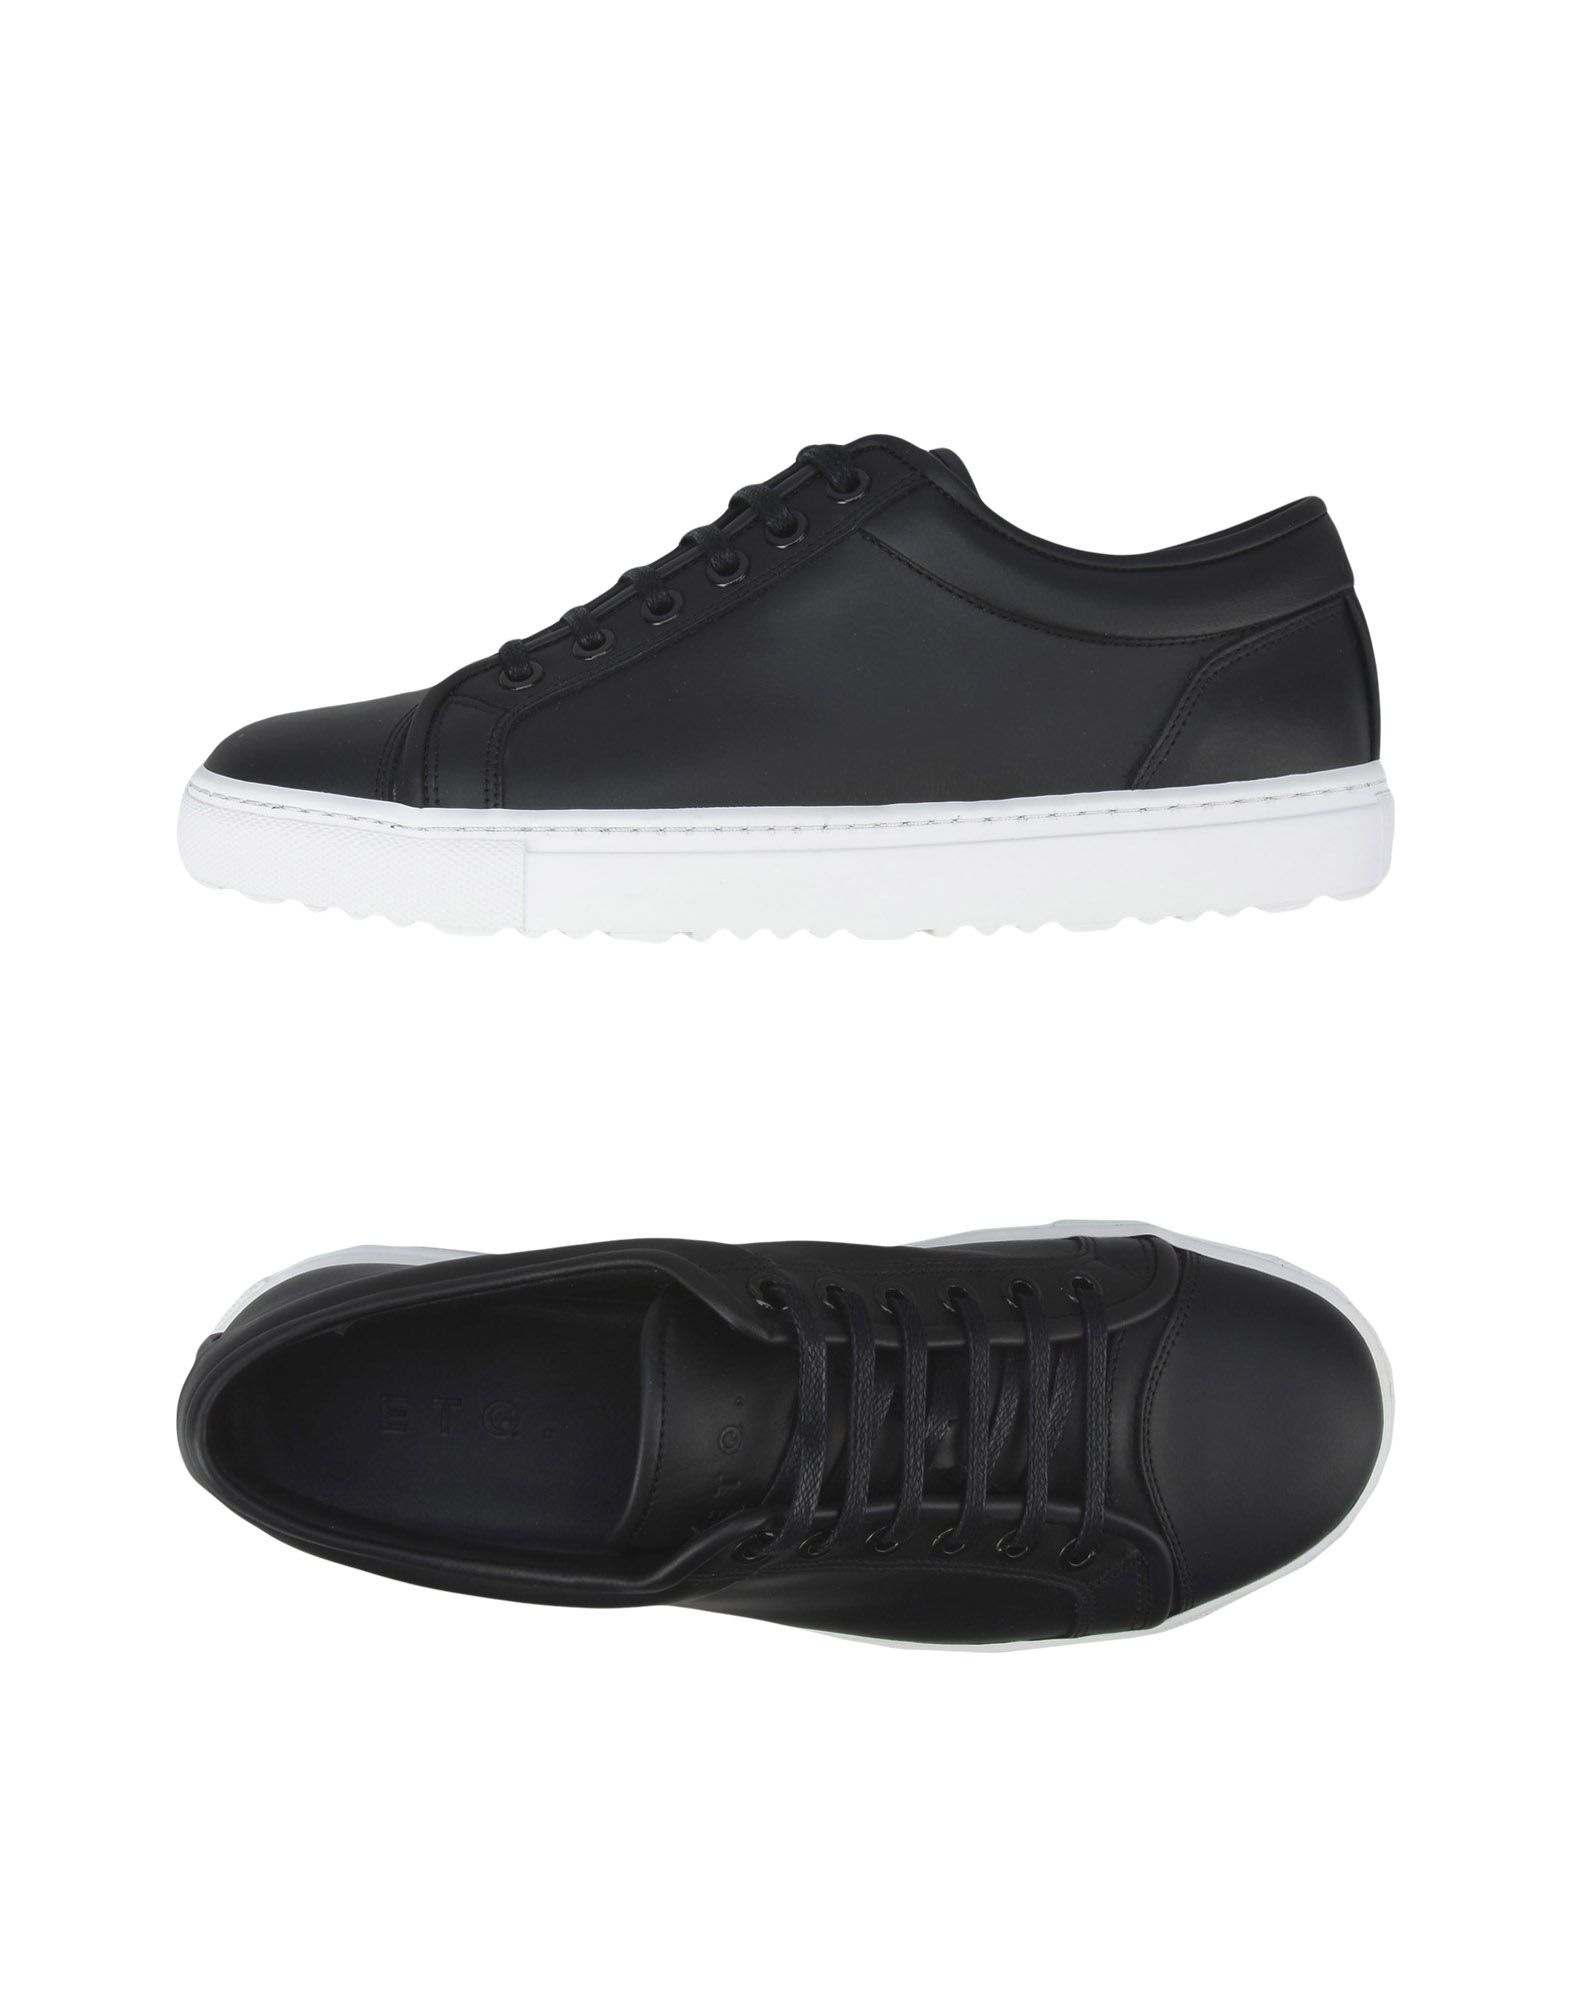 Etq Amsterdam Low 1 - Rubberized Black - Sneakers - 1 Women Etq Amsterdam Sneakers online on  Canada - 11226449MK 9532ee